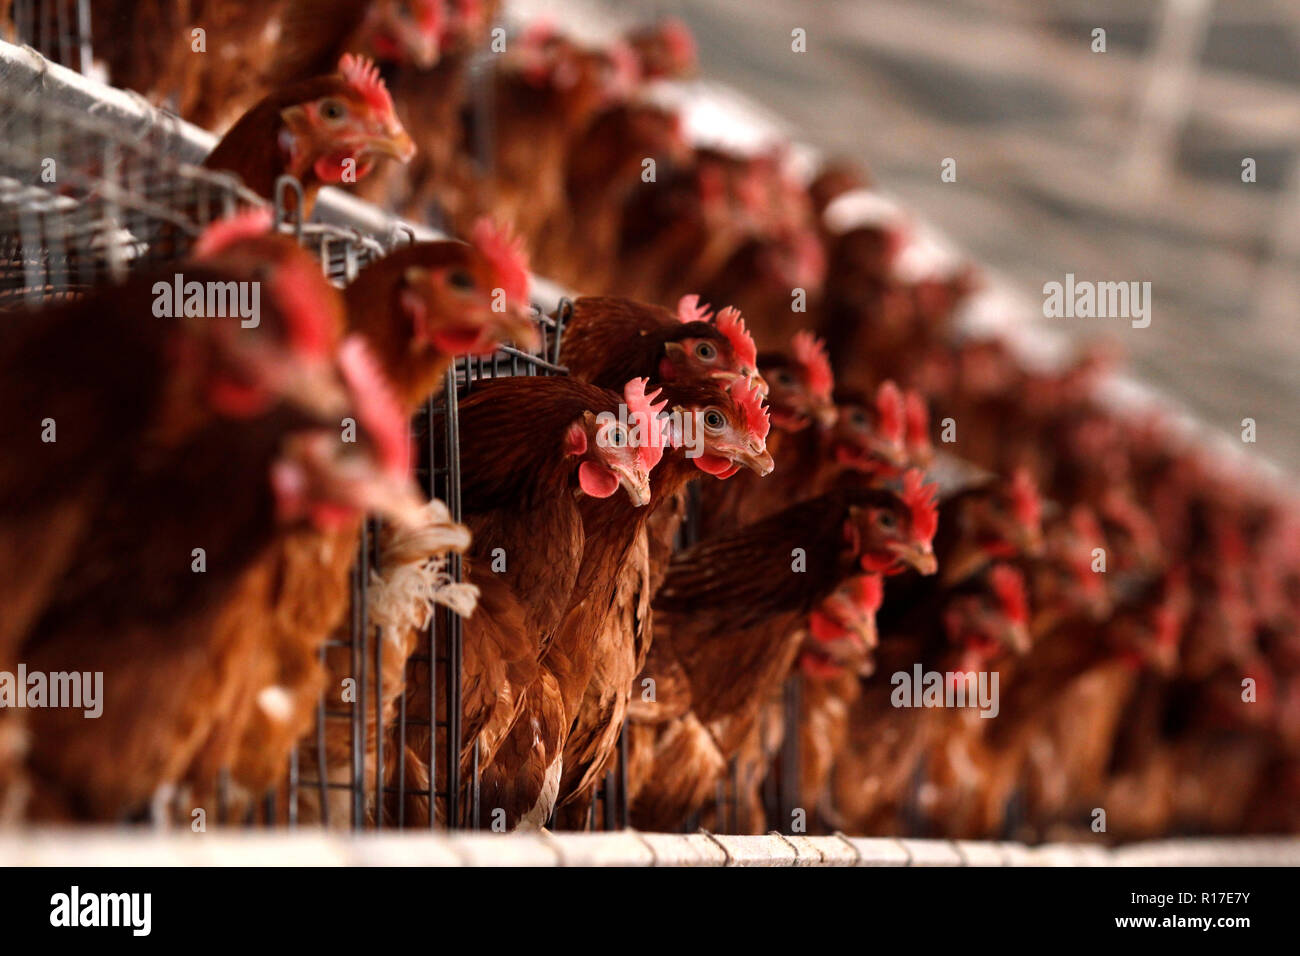 MENDOZA, ARGENTINE, August 13, 2014. Chicken hatchery, poultry dedicated to the production of eggs, Luzuriaga of Maipú City, MENDOZA. Foto: Axel Llore - Stock Image